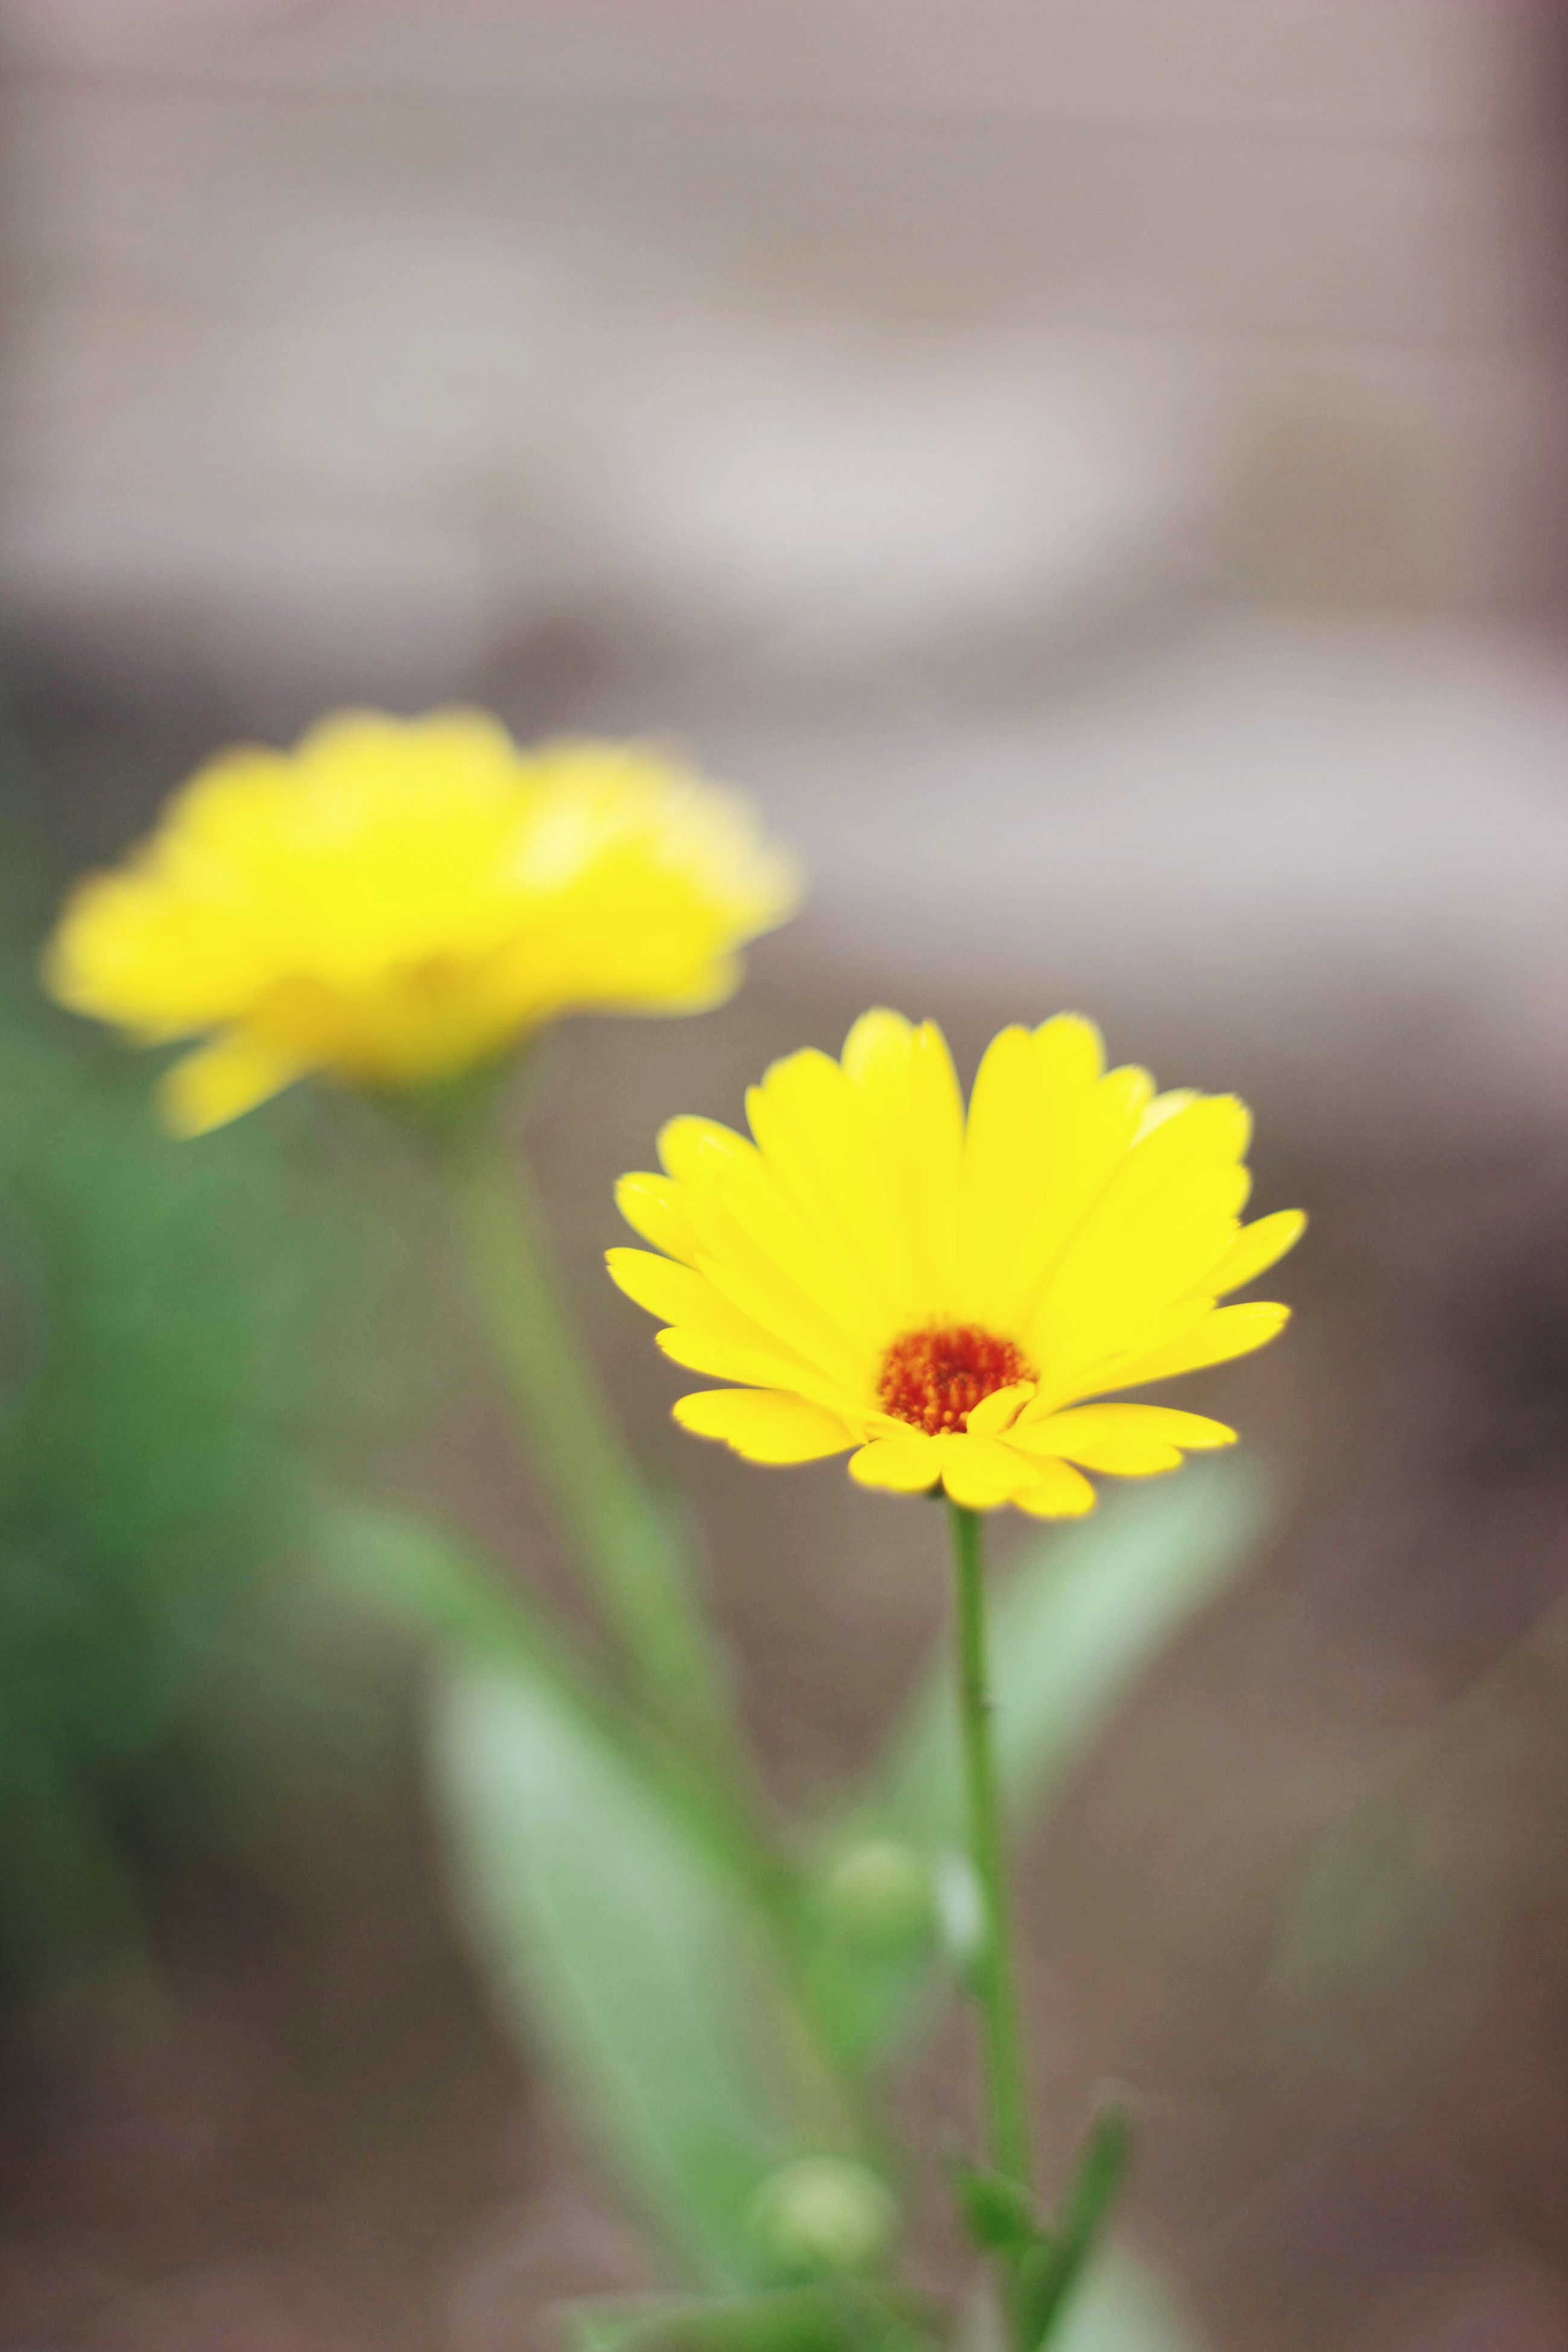 flower, petal, yellow, freshness, fragility, flower head, focus on foreground, beauty in nature, growth, close-up, blooming, nature, plant, selective focus, stem, in bloom, single flower, pollen, blossom, outdoors